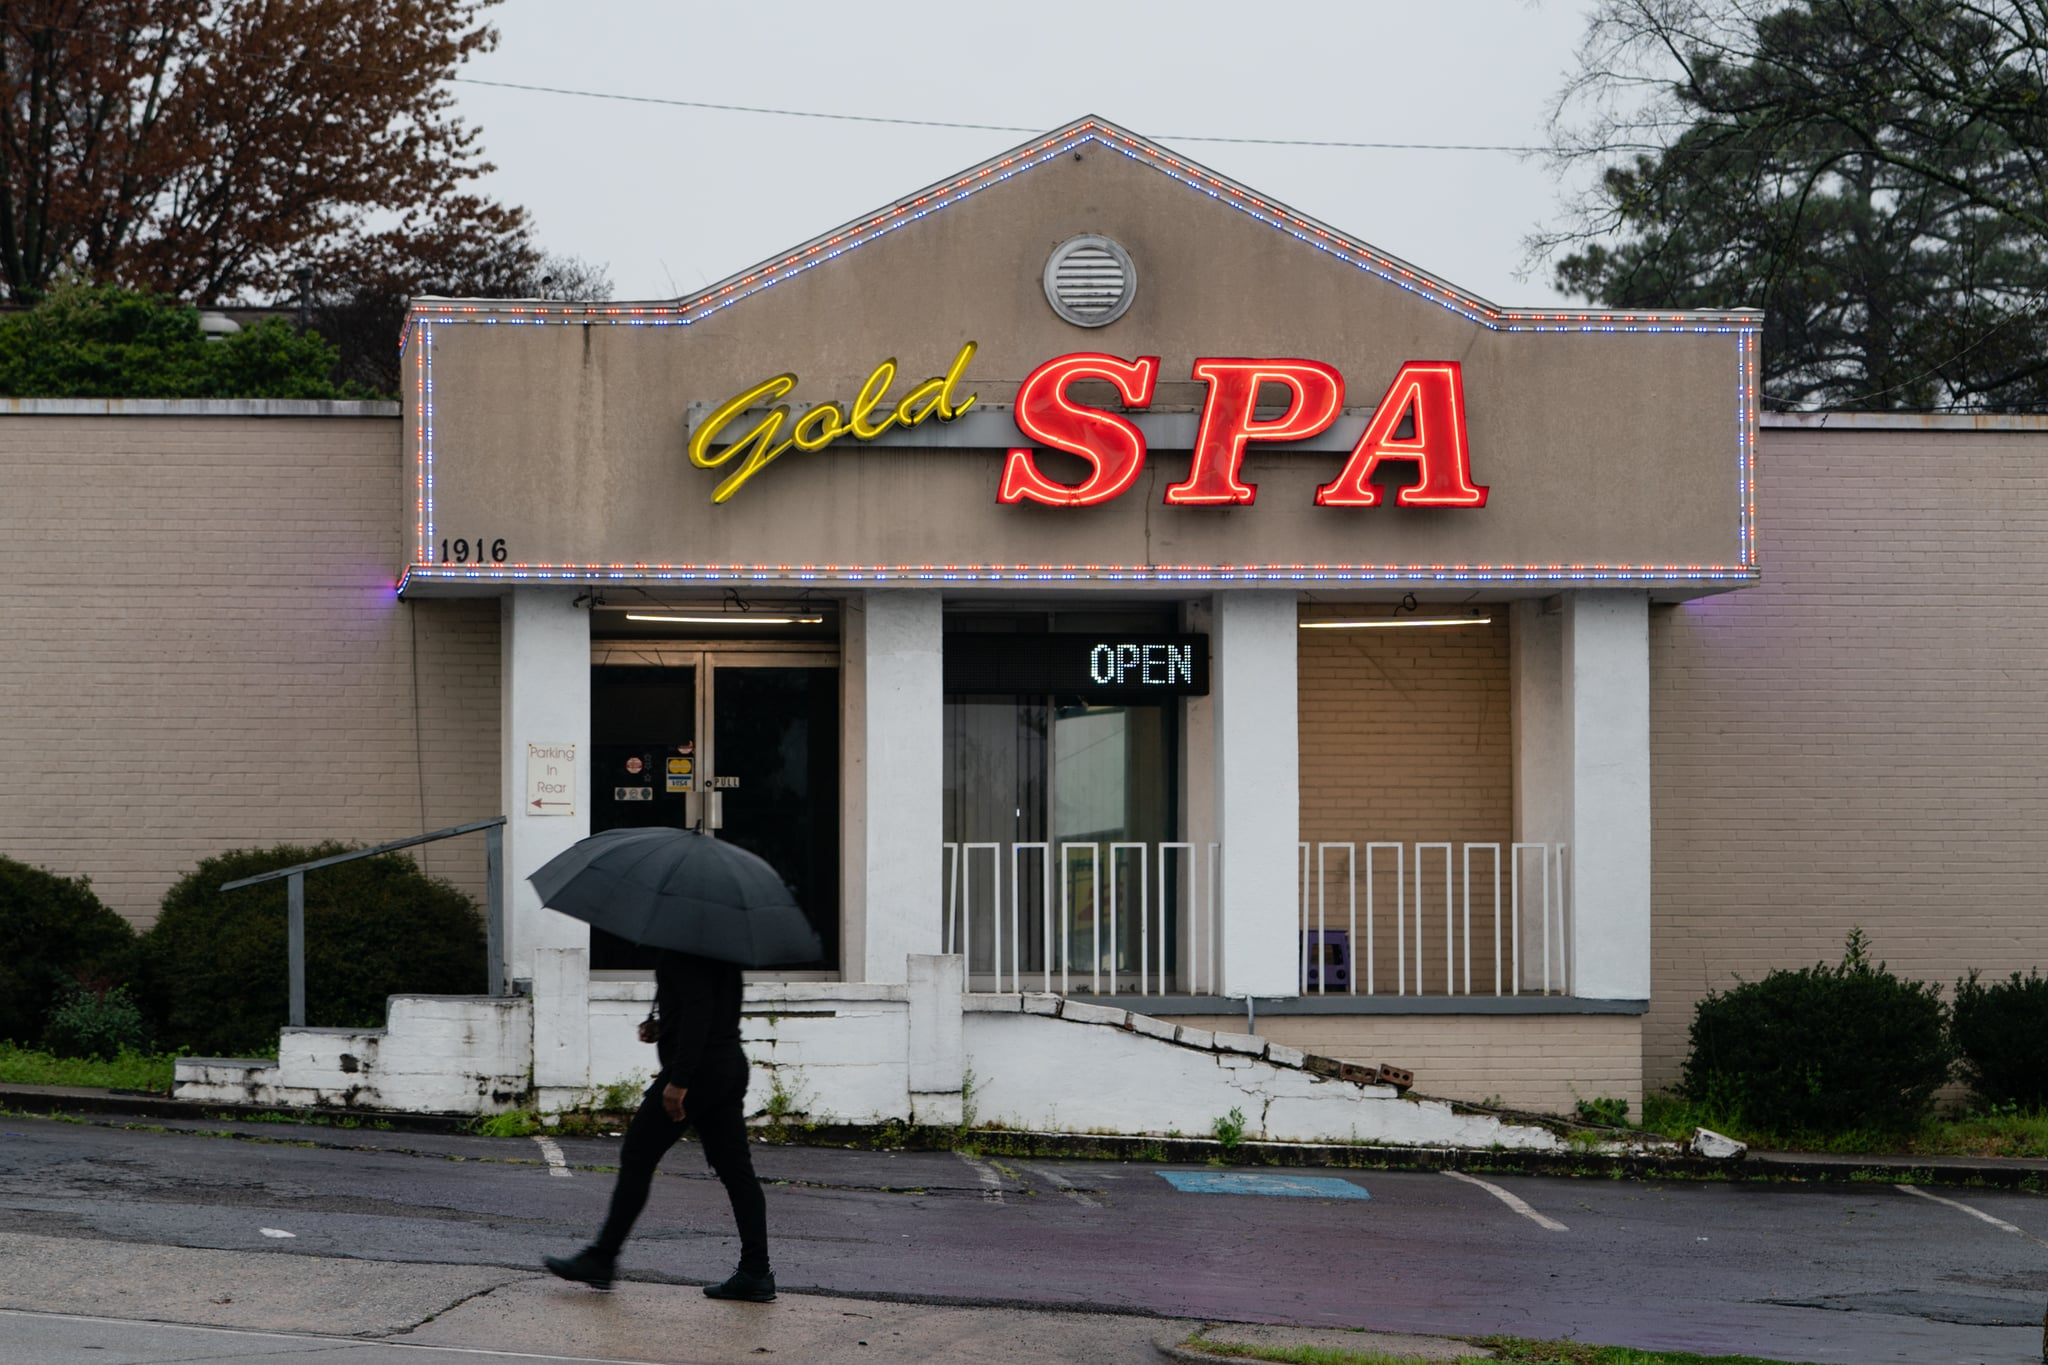 ATLANTA, GA - MARCH 17: A man walks past a massage parlor where three women were shot and killed on March 17, 2021 in Atlanta, Georgia. Suspect Robert Aaron Long, 21, was arrested after a series of shootings at three Atlanta-area spas left eight people dead on Tuesday night, including six Asian women. (Photo by Elijah Nouvelage/Getty Images)